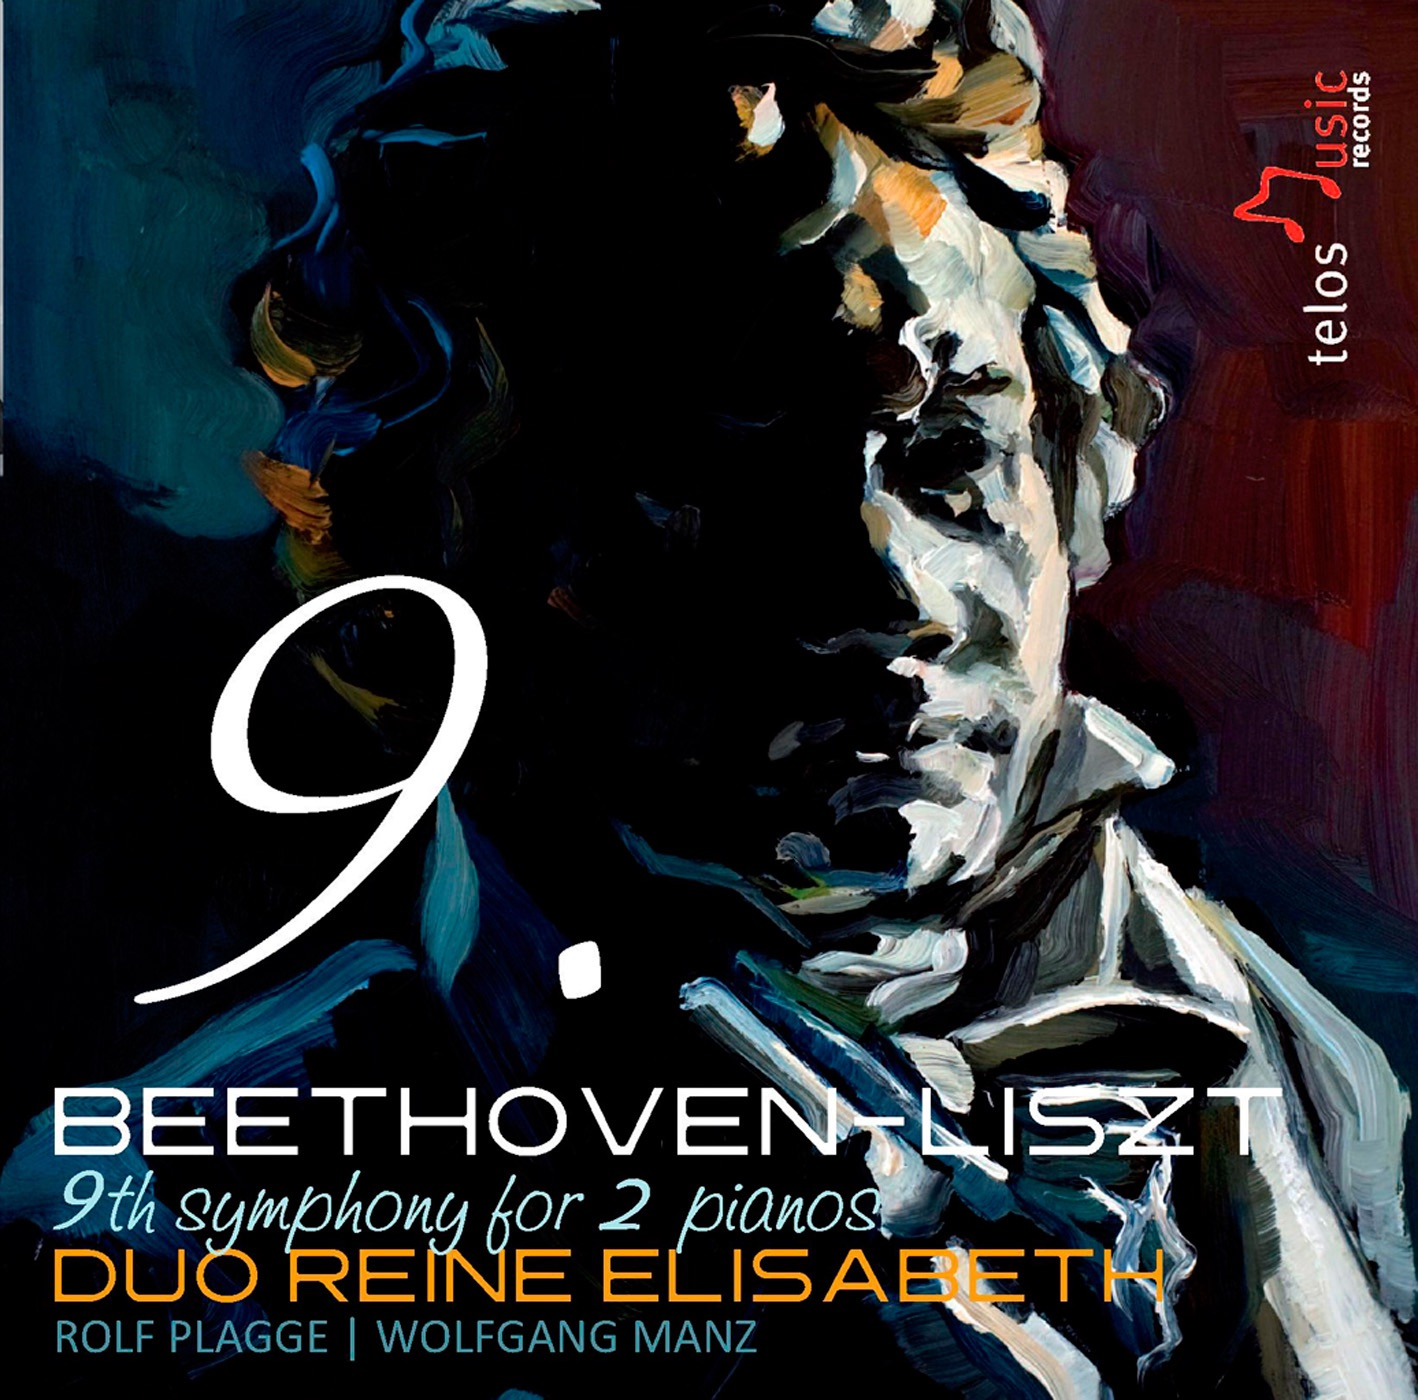 beethovens 9th Beethoven's ninth symphony tickets: find discount beethoven's ninth symphony tickets for sale at queenbeeticketscom, your trusted online destination for 2018-2019 tickets on the secondary market.